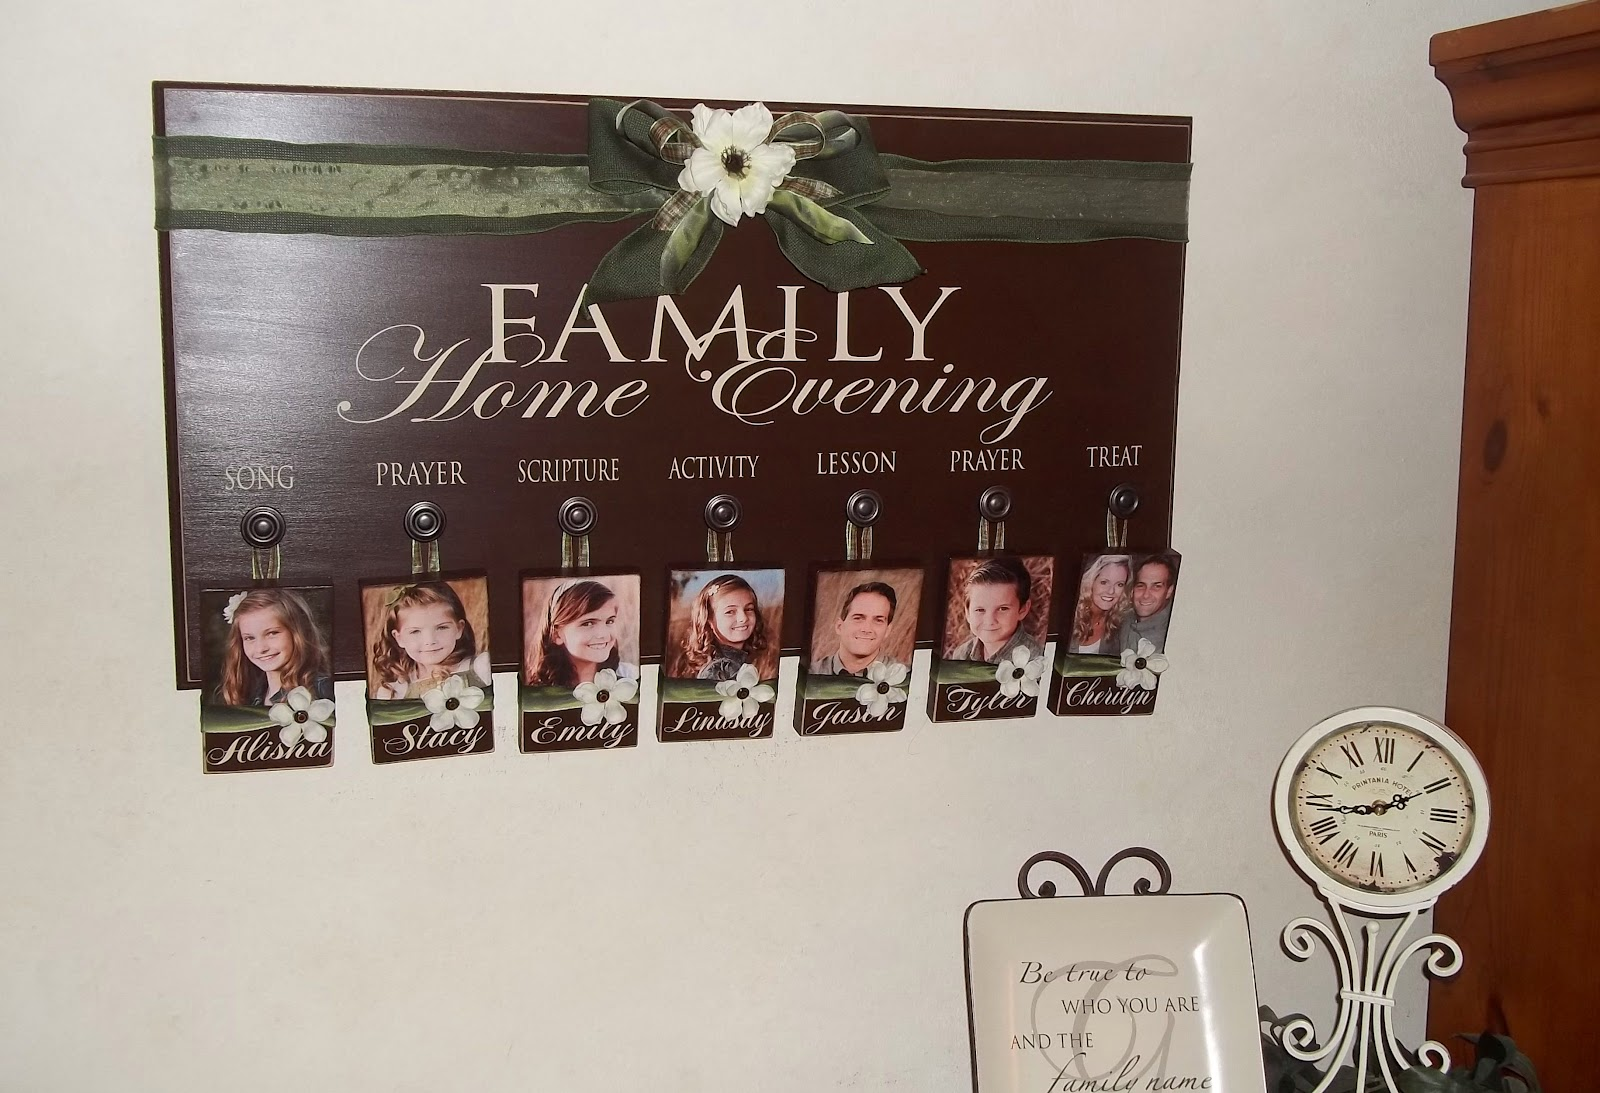 cher s signs by design family home evening board